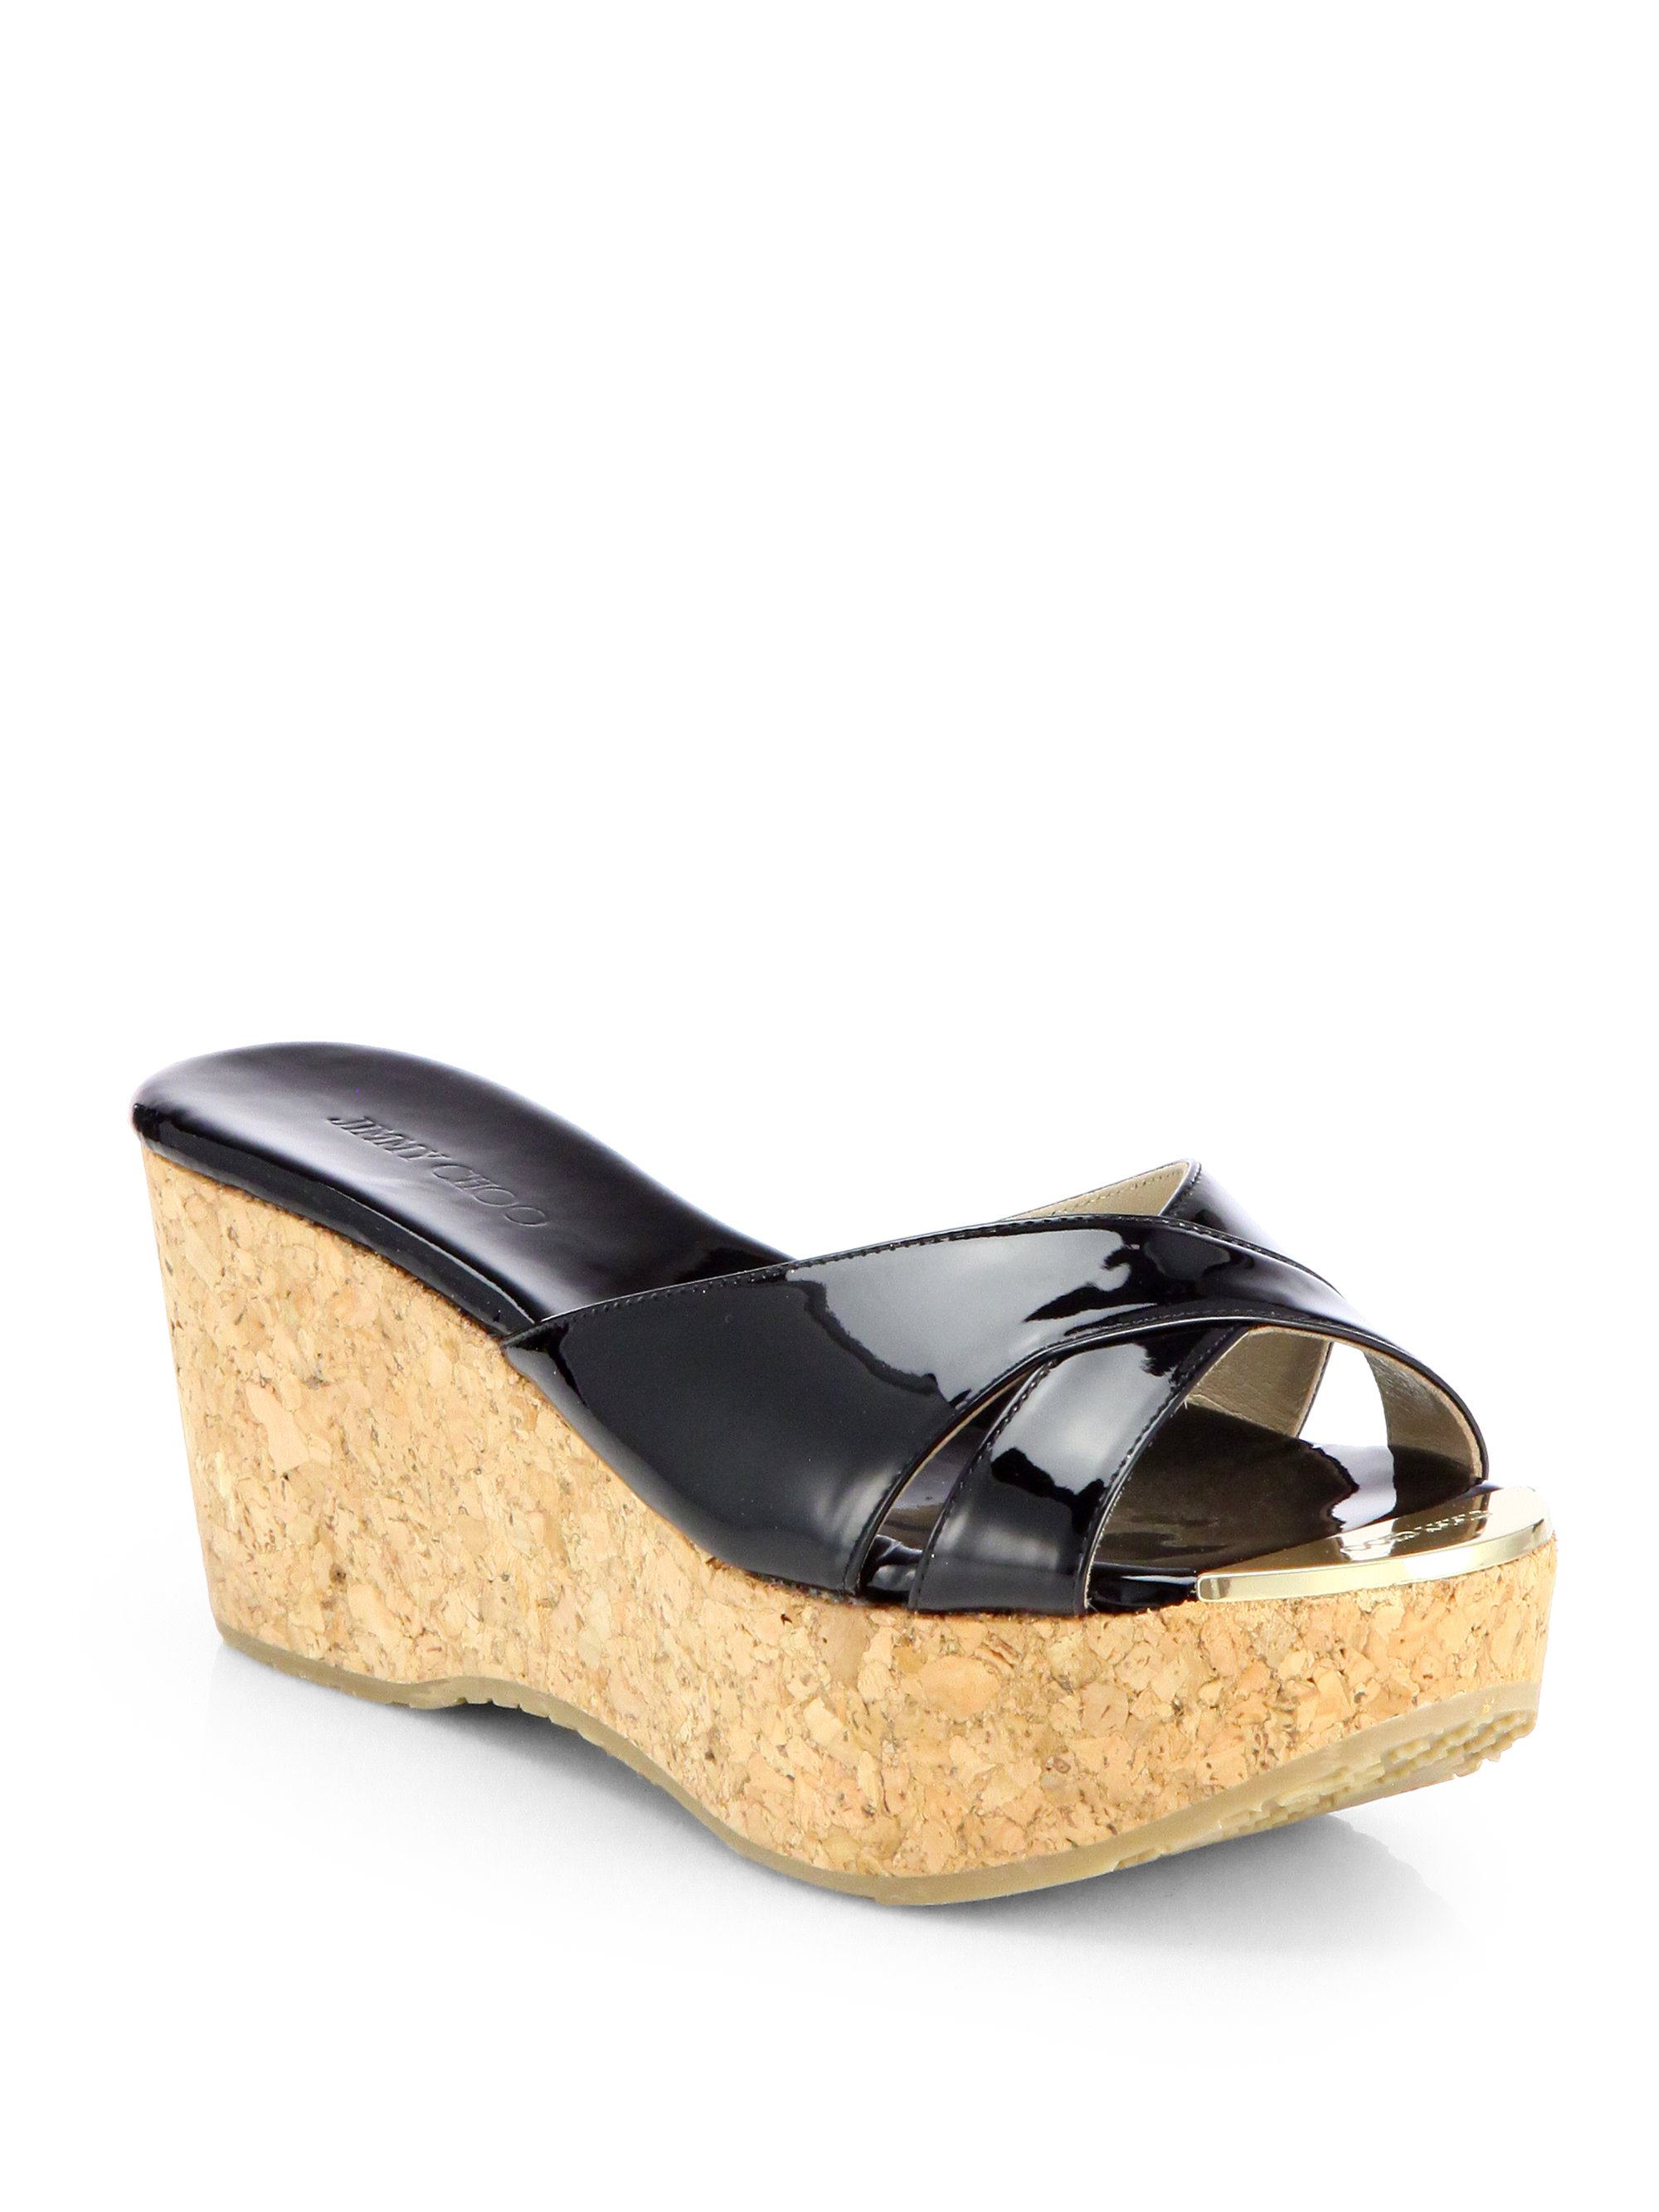 Jimmy Choo Prima Patent Leather Cork Wedge Sandals In